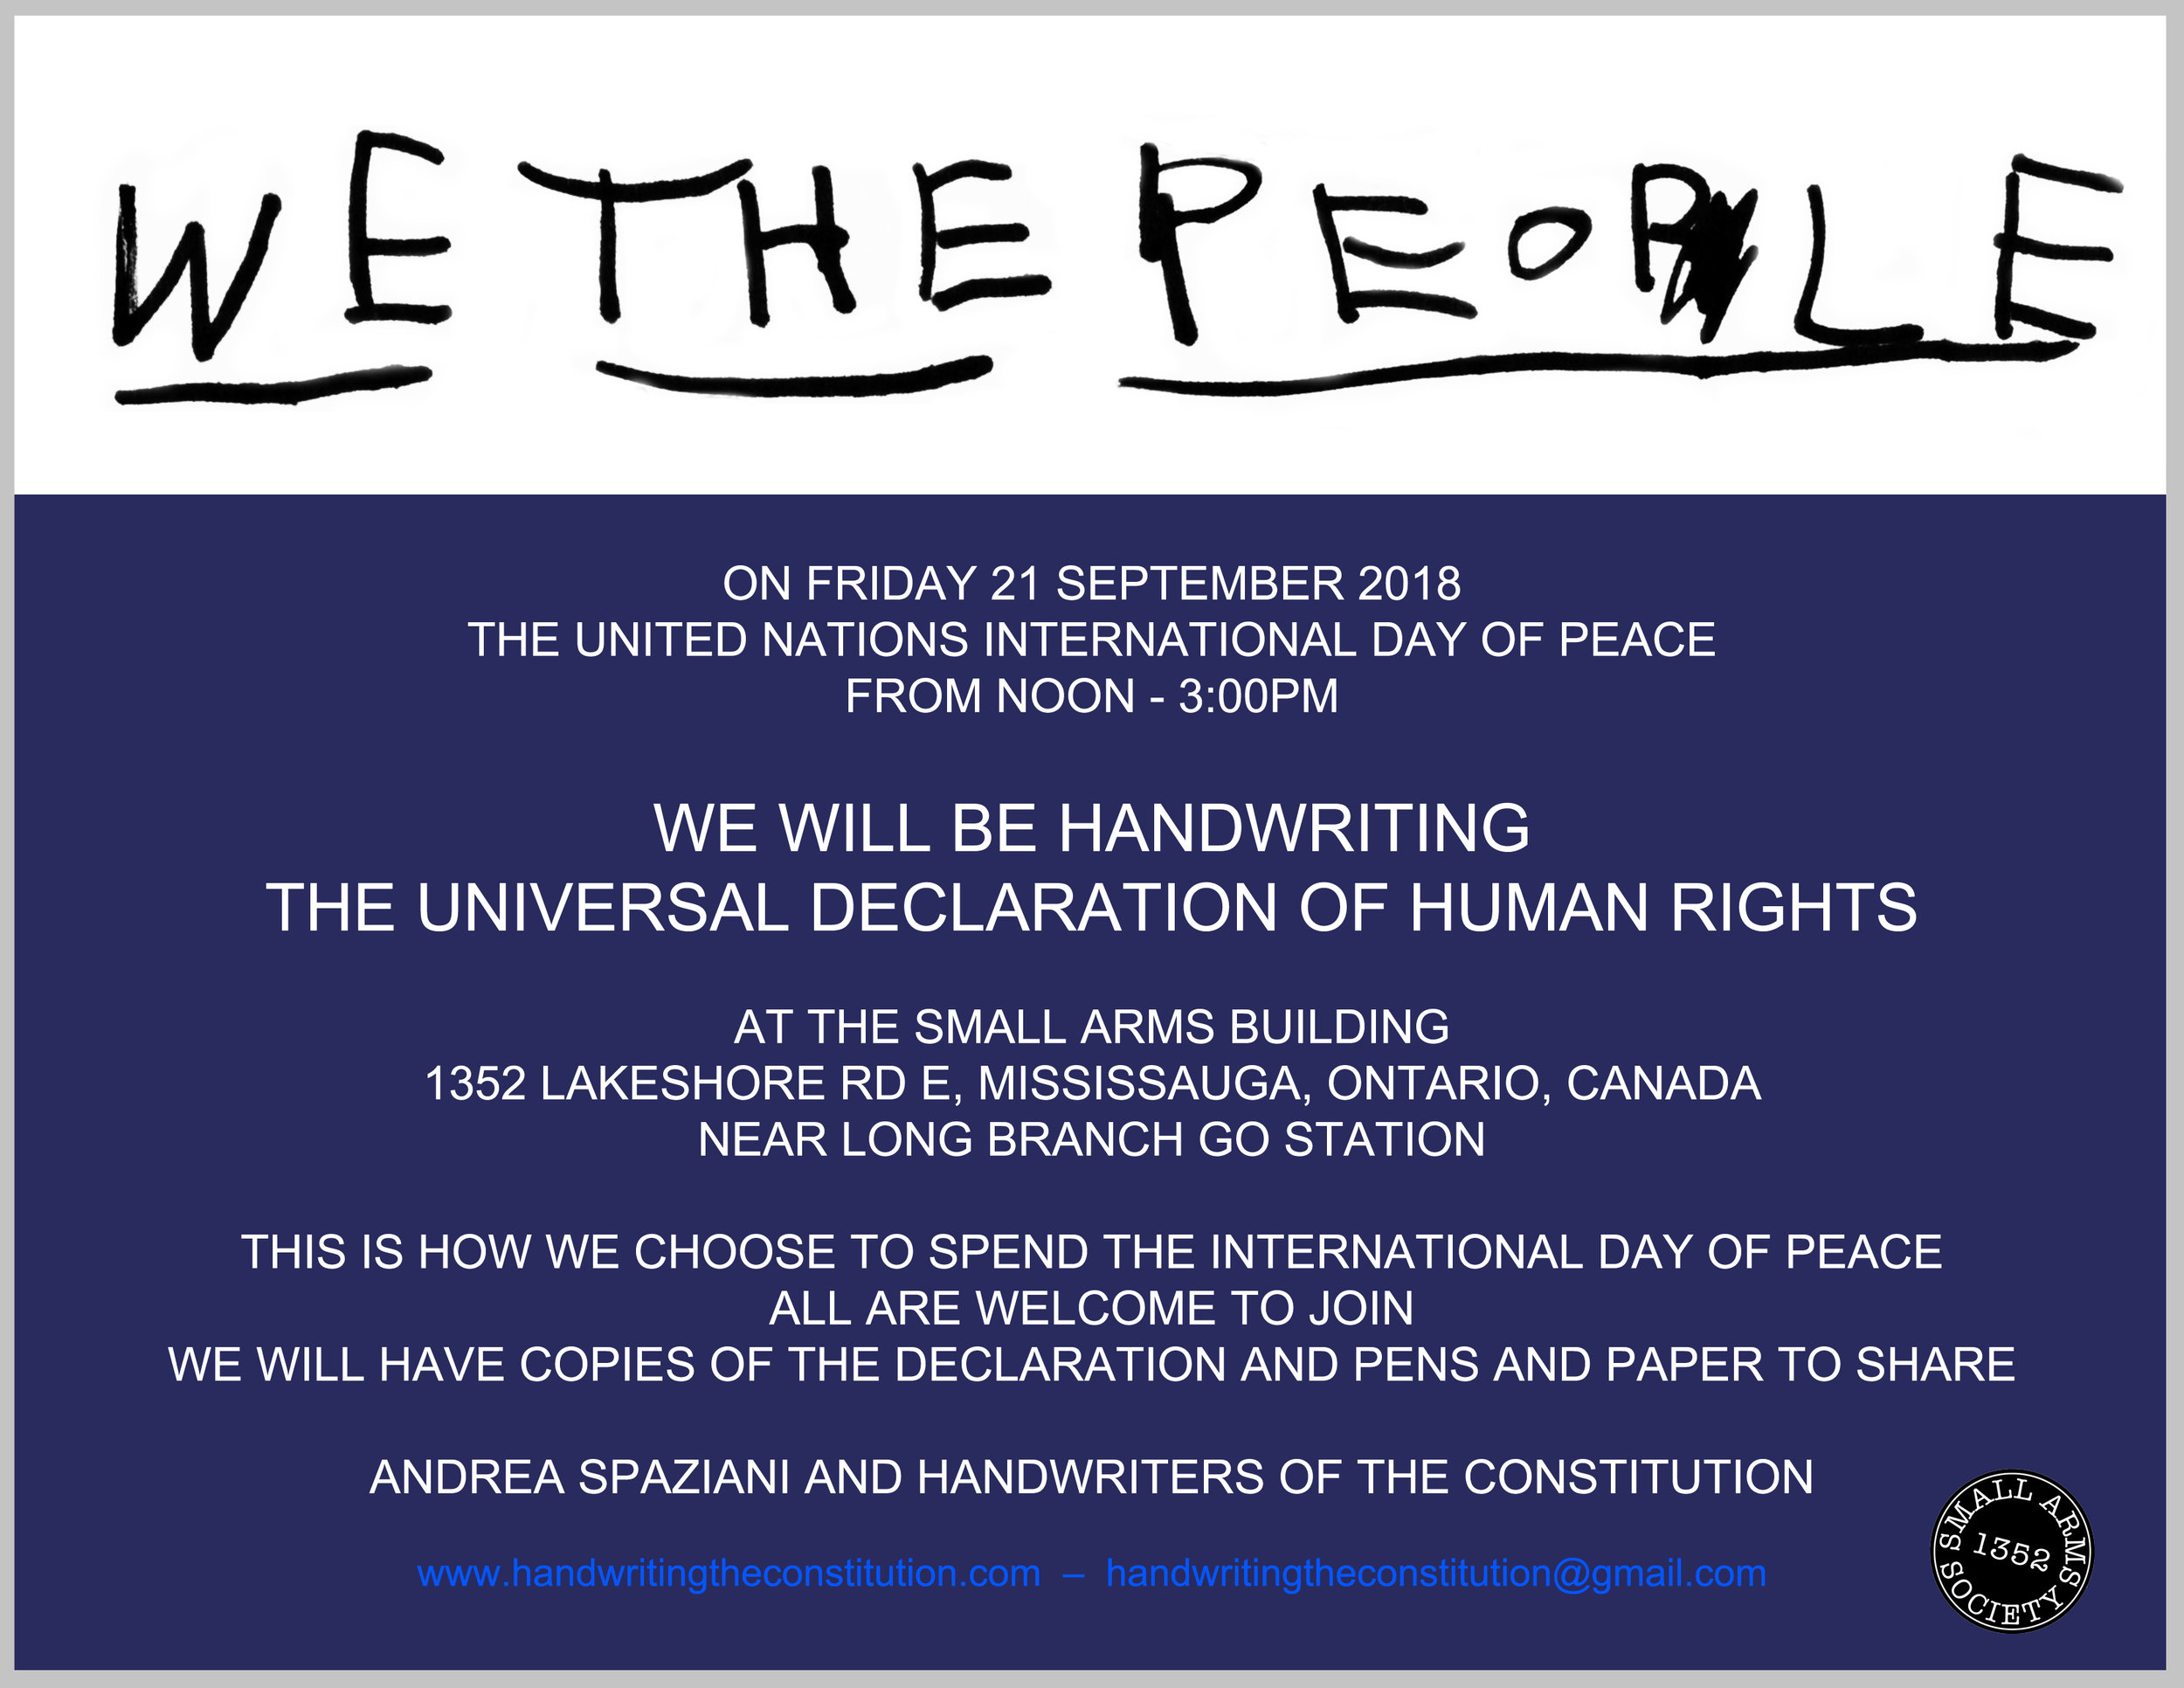 21 September 2018mississauga, Canada - session 67collaborators andrea spaziani and the small arms society